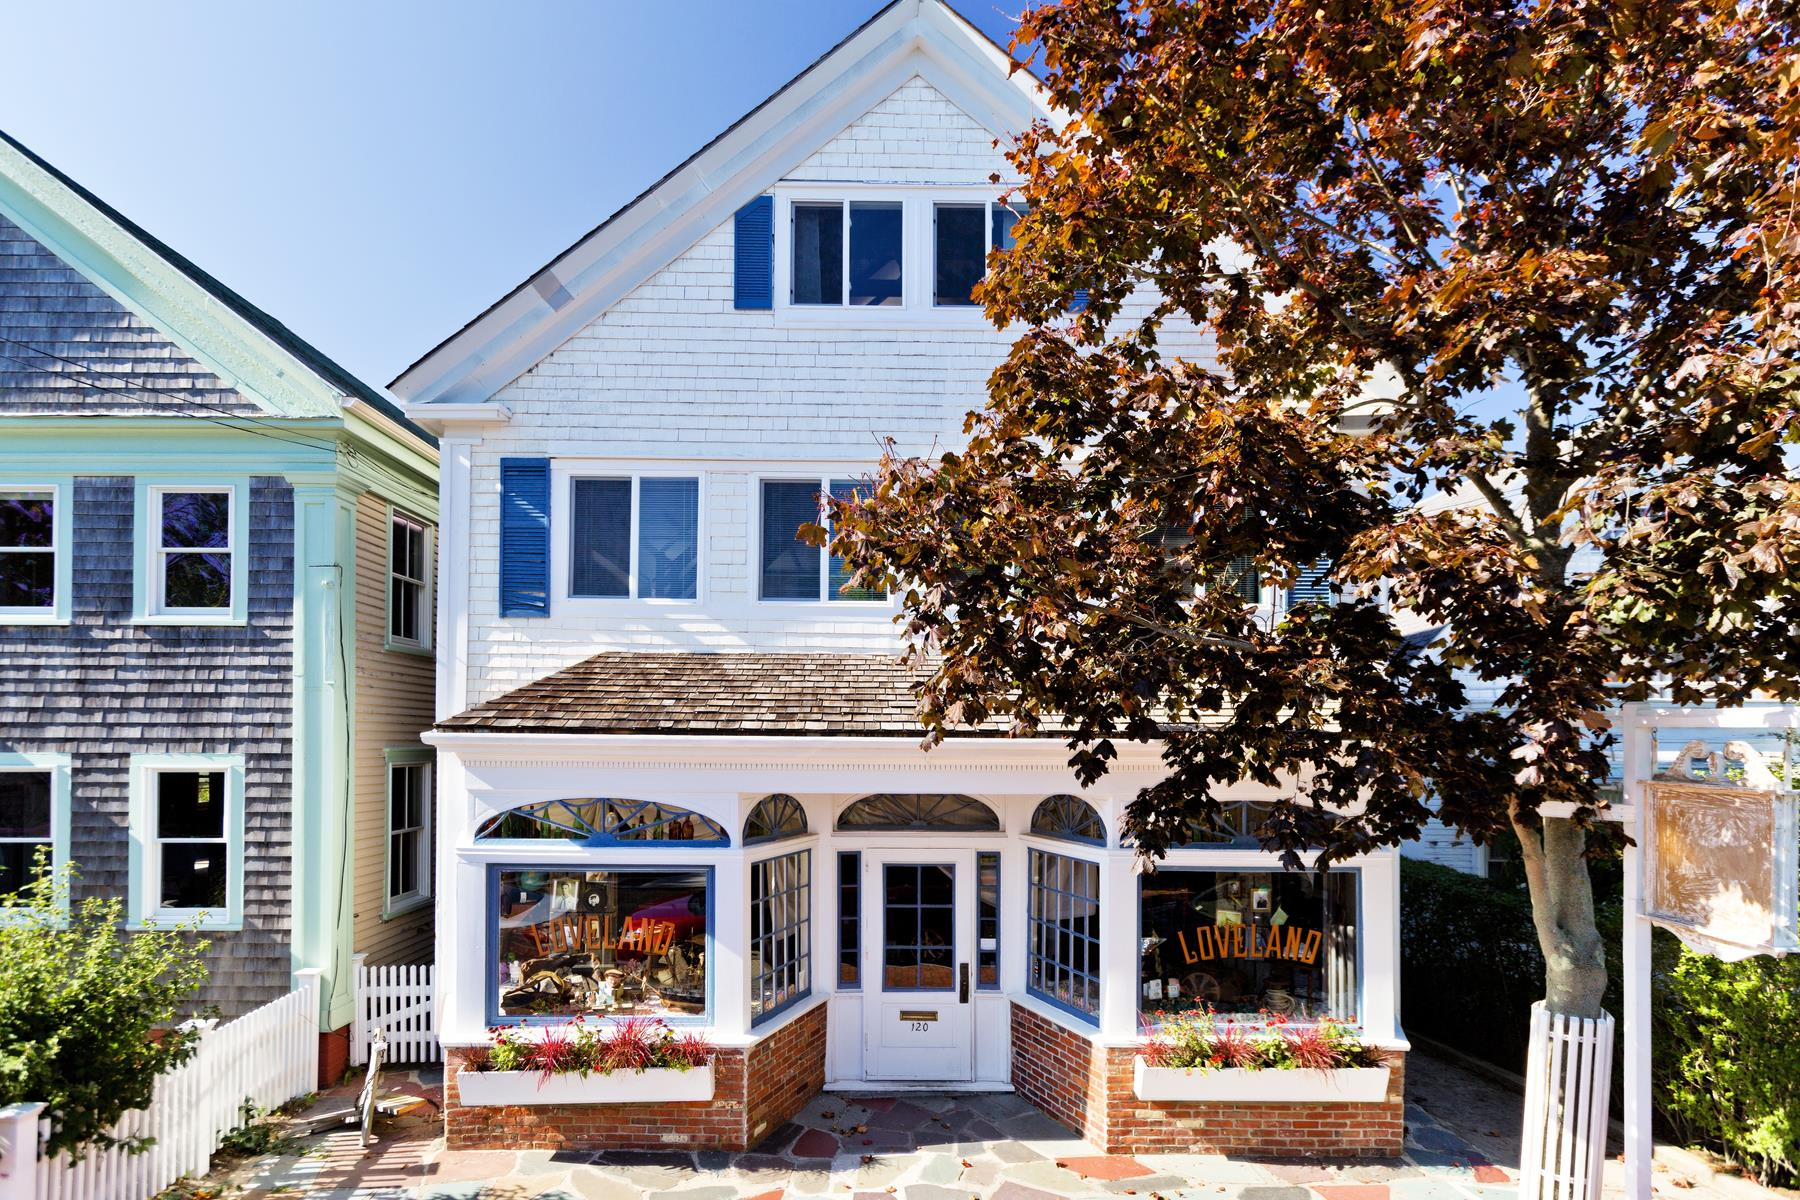 Single Family Home for Sale at Stately West End Home 120 Commercial Street Provincetown, Massachusetts 02657 United States